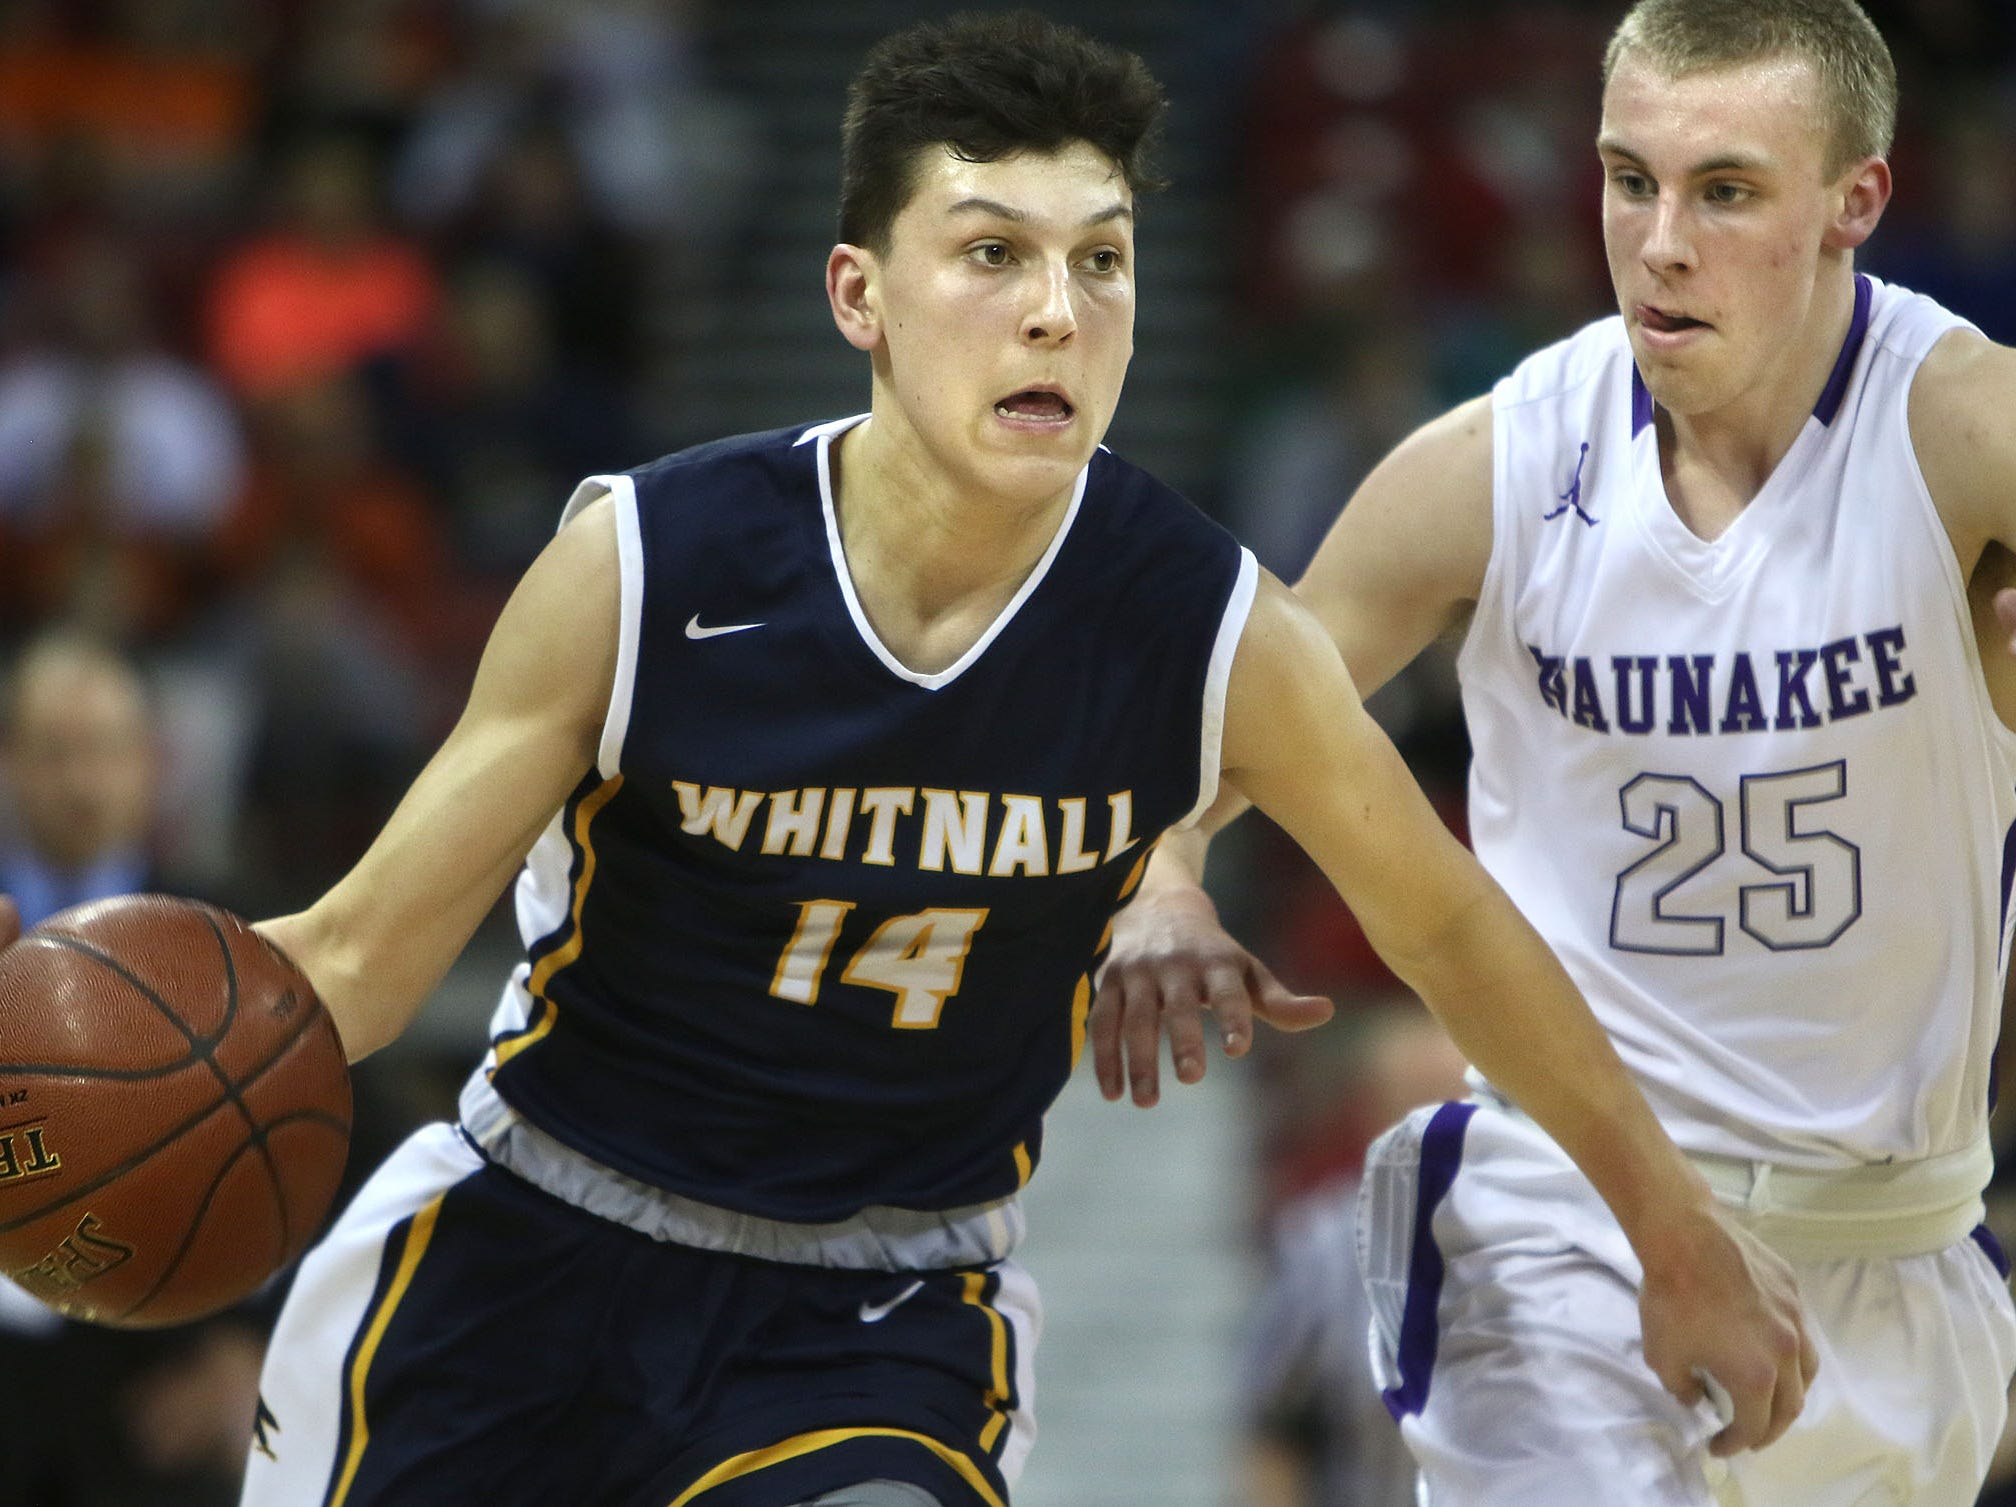 Whitnall's Tyler Herro (14) drives past  Waunakee's Mason Steffen (25) during the teams W.I.A.A. Boys State Basketball Tournament semi-final game in the Kohl Center Friday, March 18, 2016, in Madison, Wisconsin. Waunakee won the game 62-59.